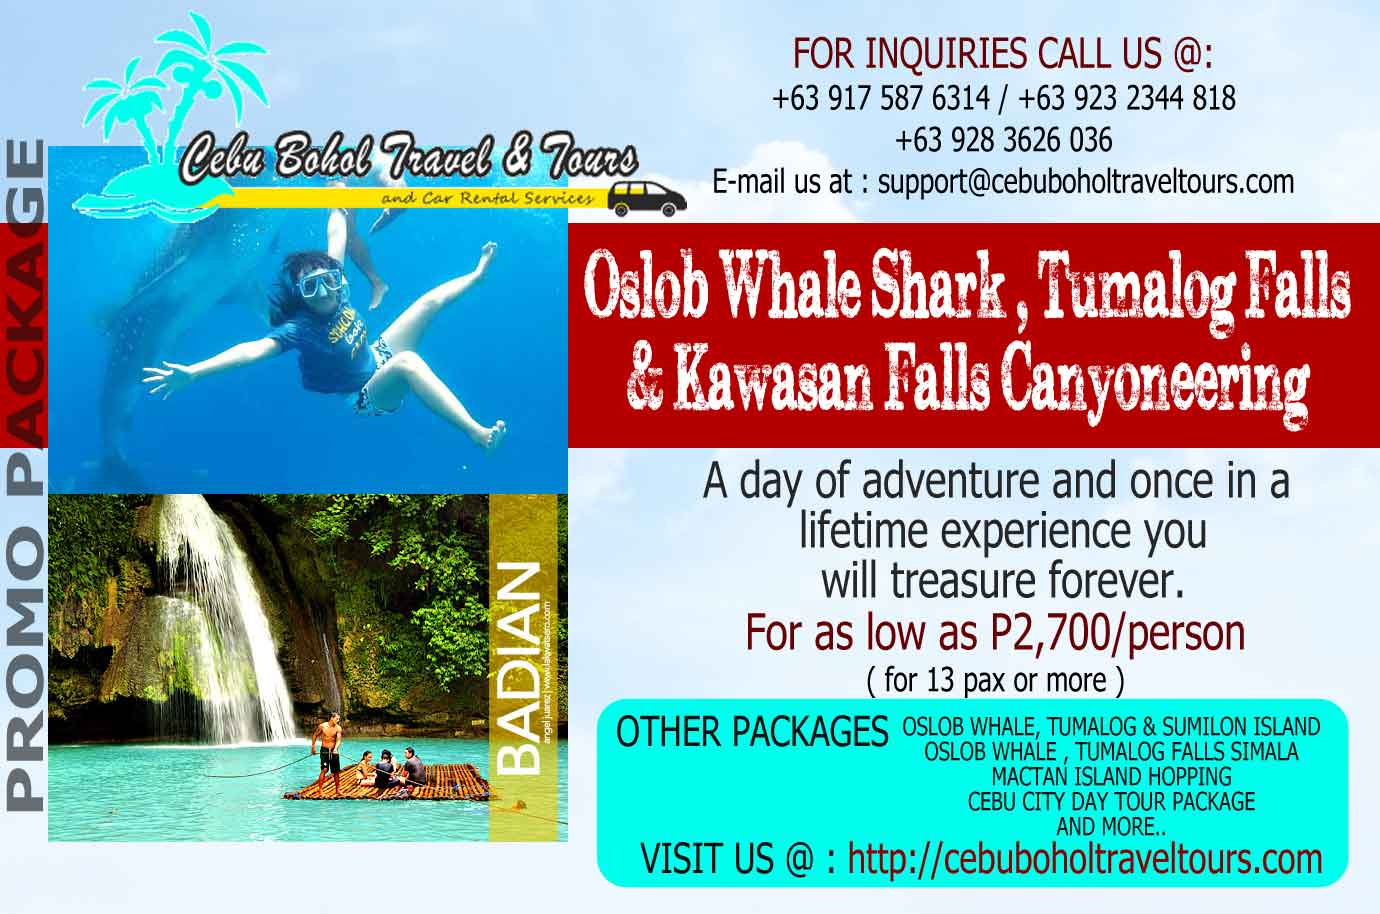 oslob whale shark and canyoneering